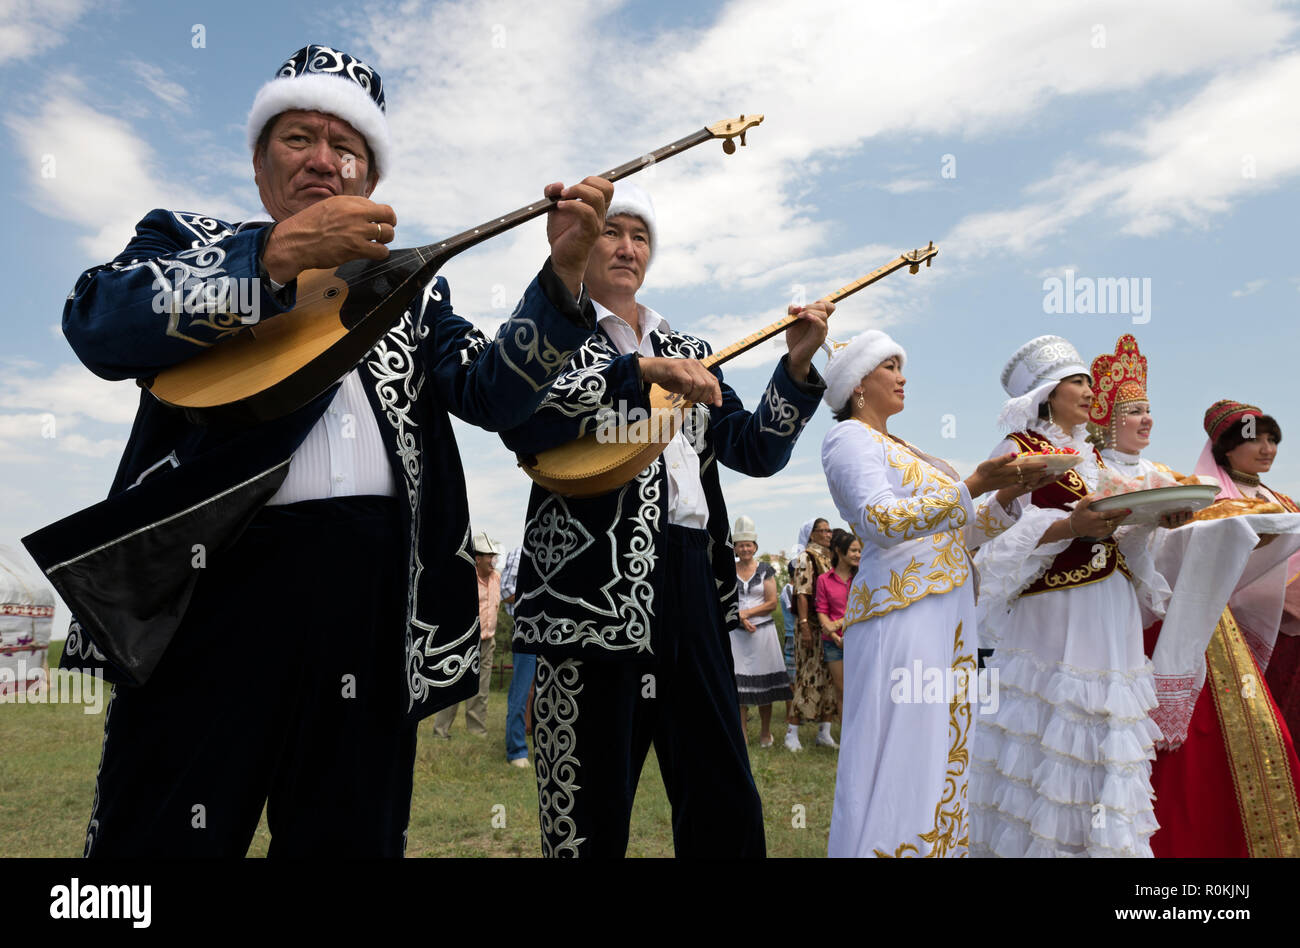 Kazakh national musical group plays dombra in the steppe, Astrakhan, Russia - Stock Image